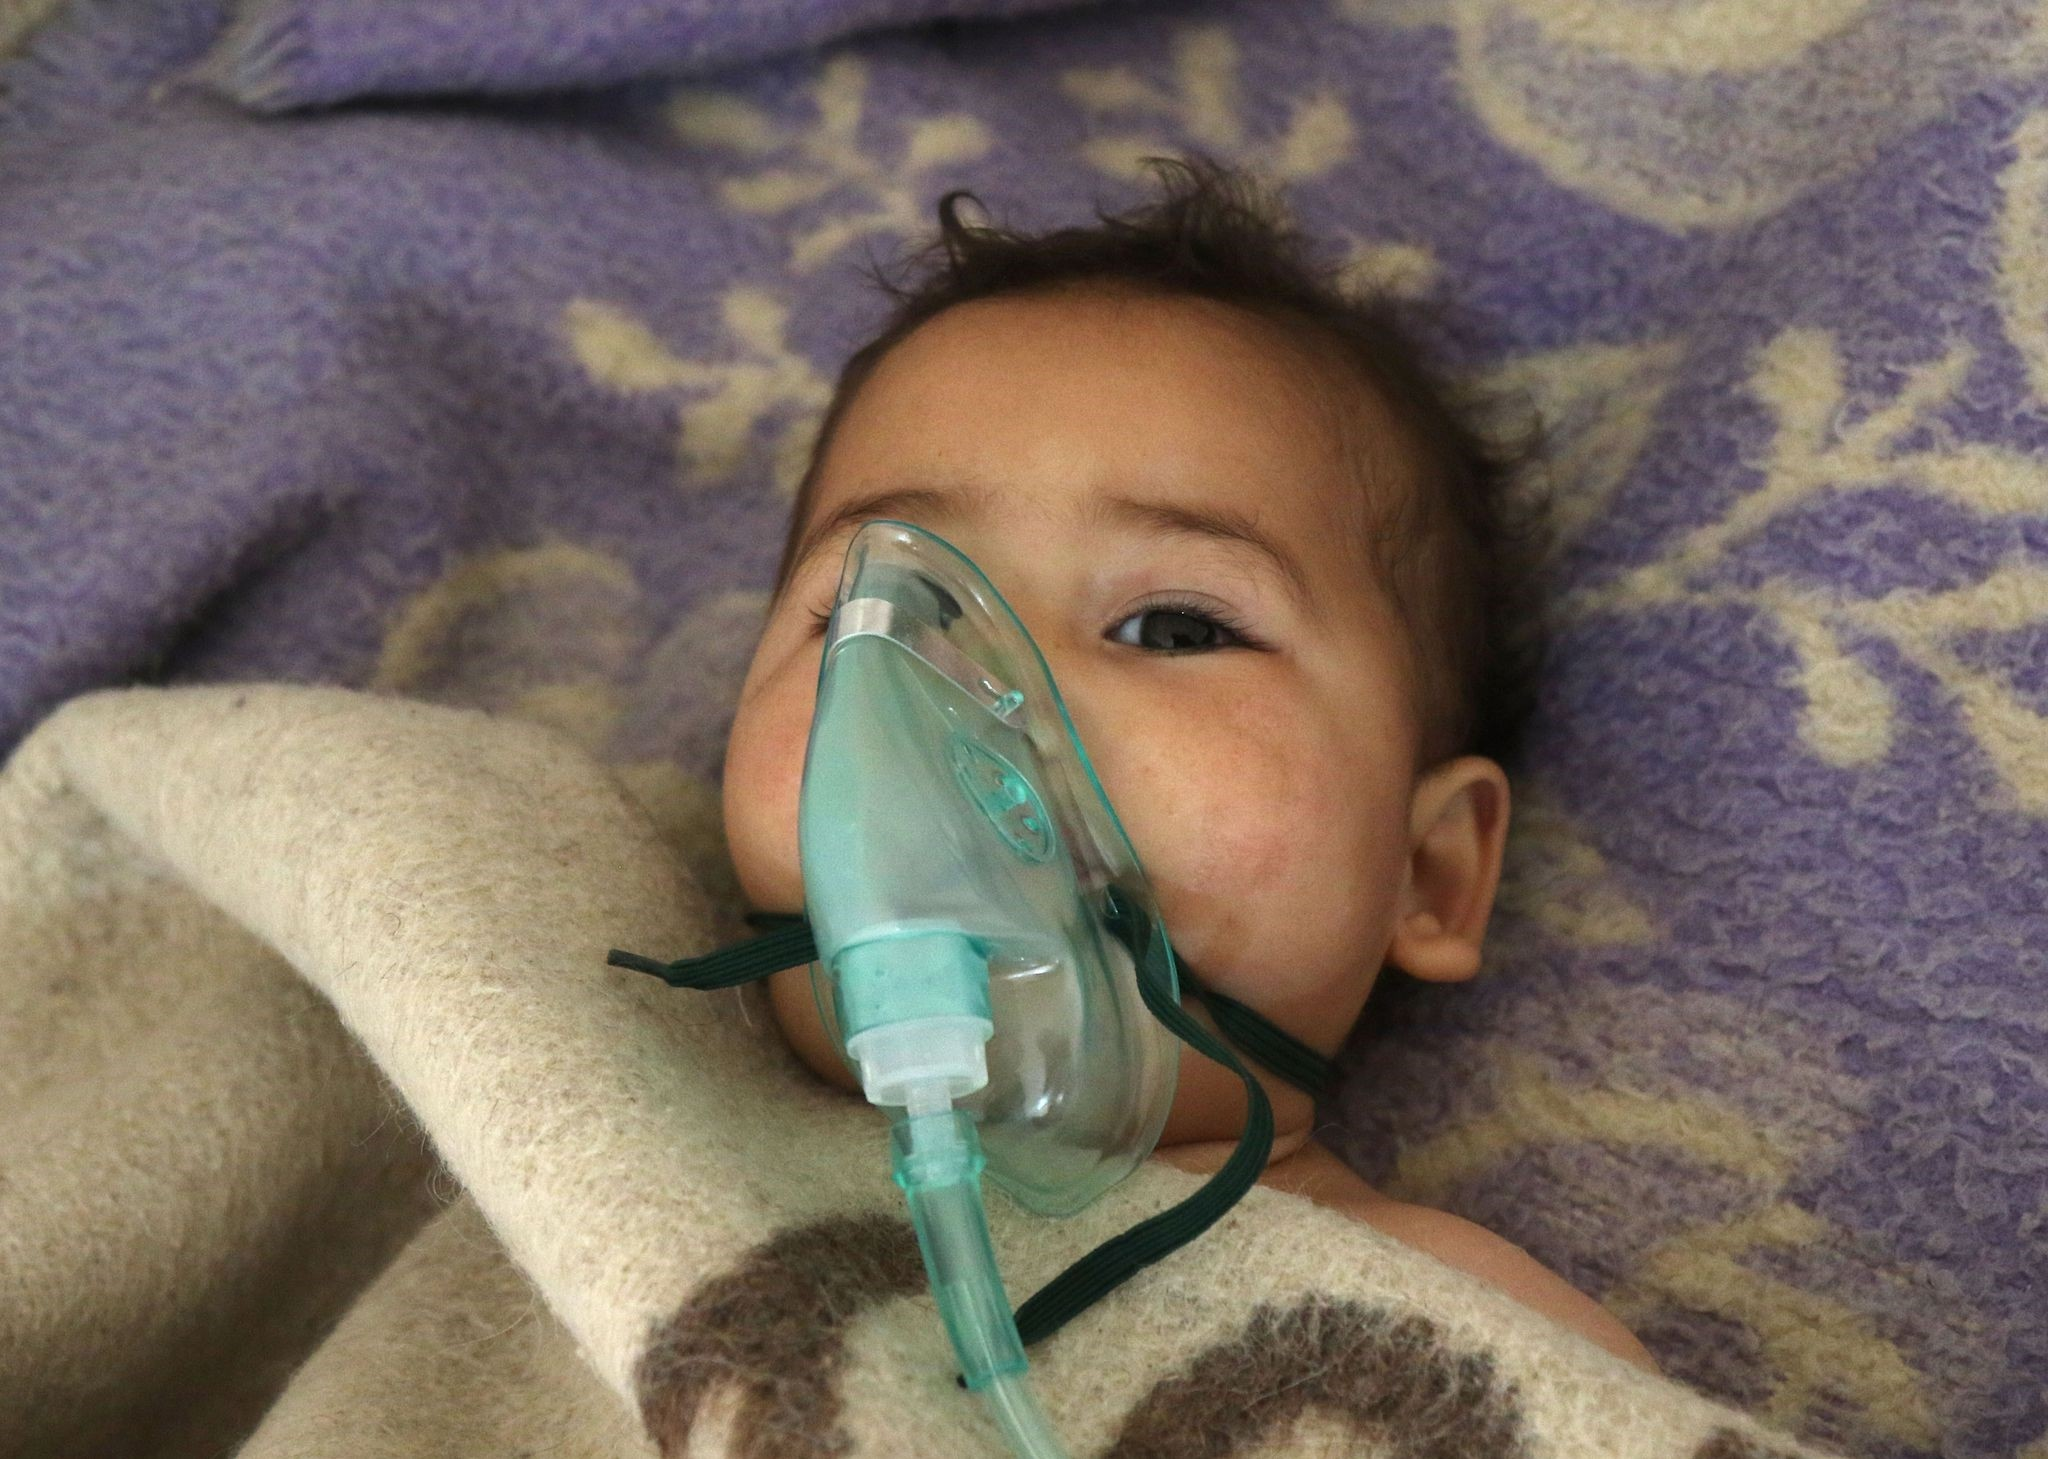 A Syrian child receiving treatment at a small hospital in the town of Maaret al-Noman following a toxic gas attack by the Assad regime, Idlib, Syria, April 4.